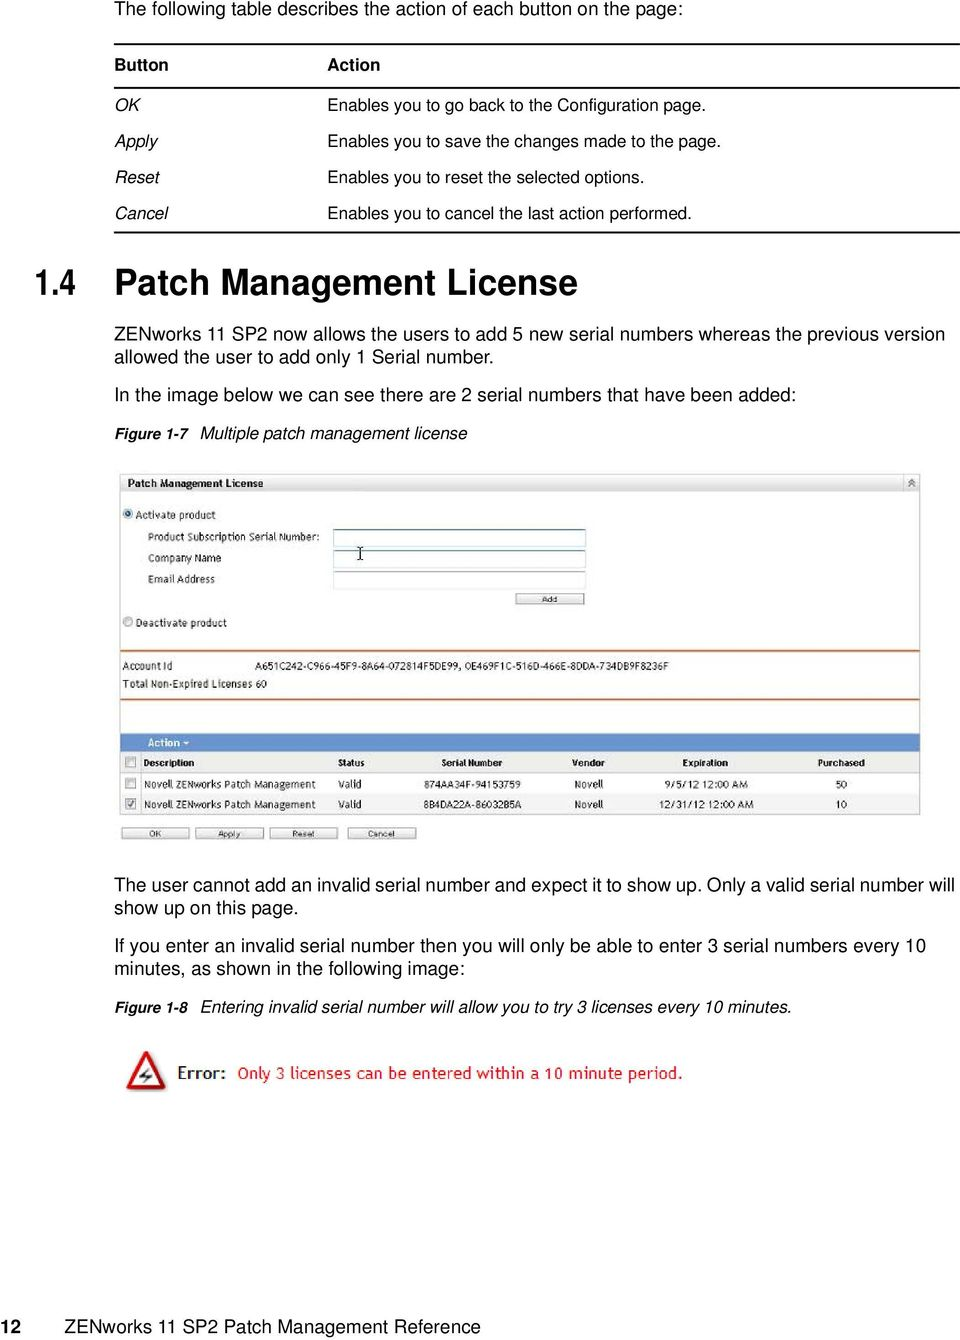 4 Patch Management License ZENworks 11 SP2 now allows the users to add 5 new serial numbers whereas the previous version allowed the user to add only 1 Serial number.